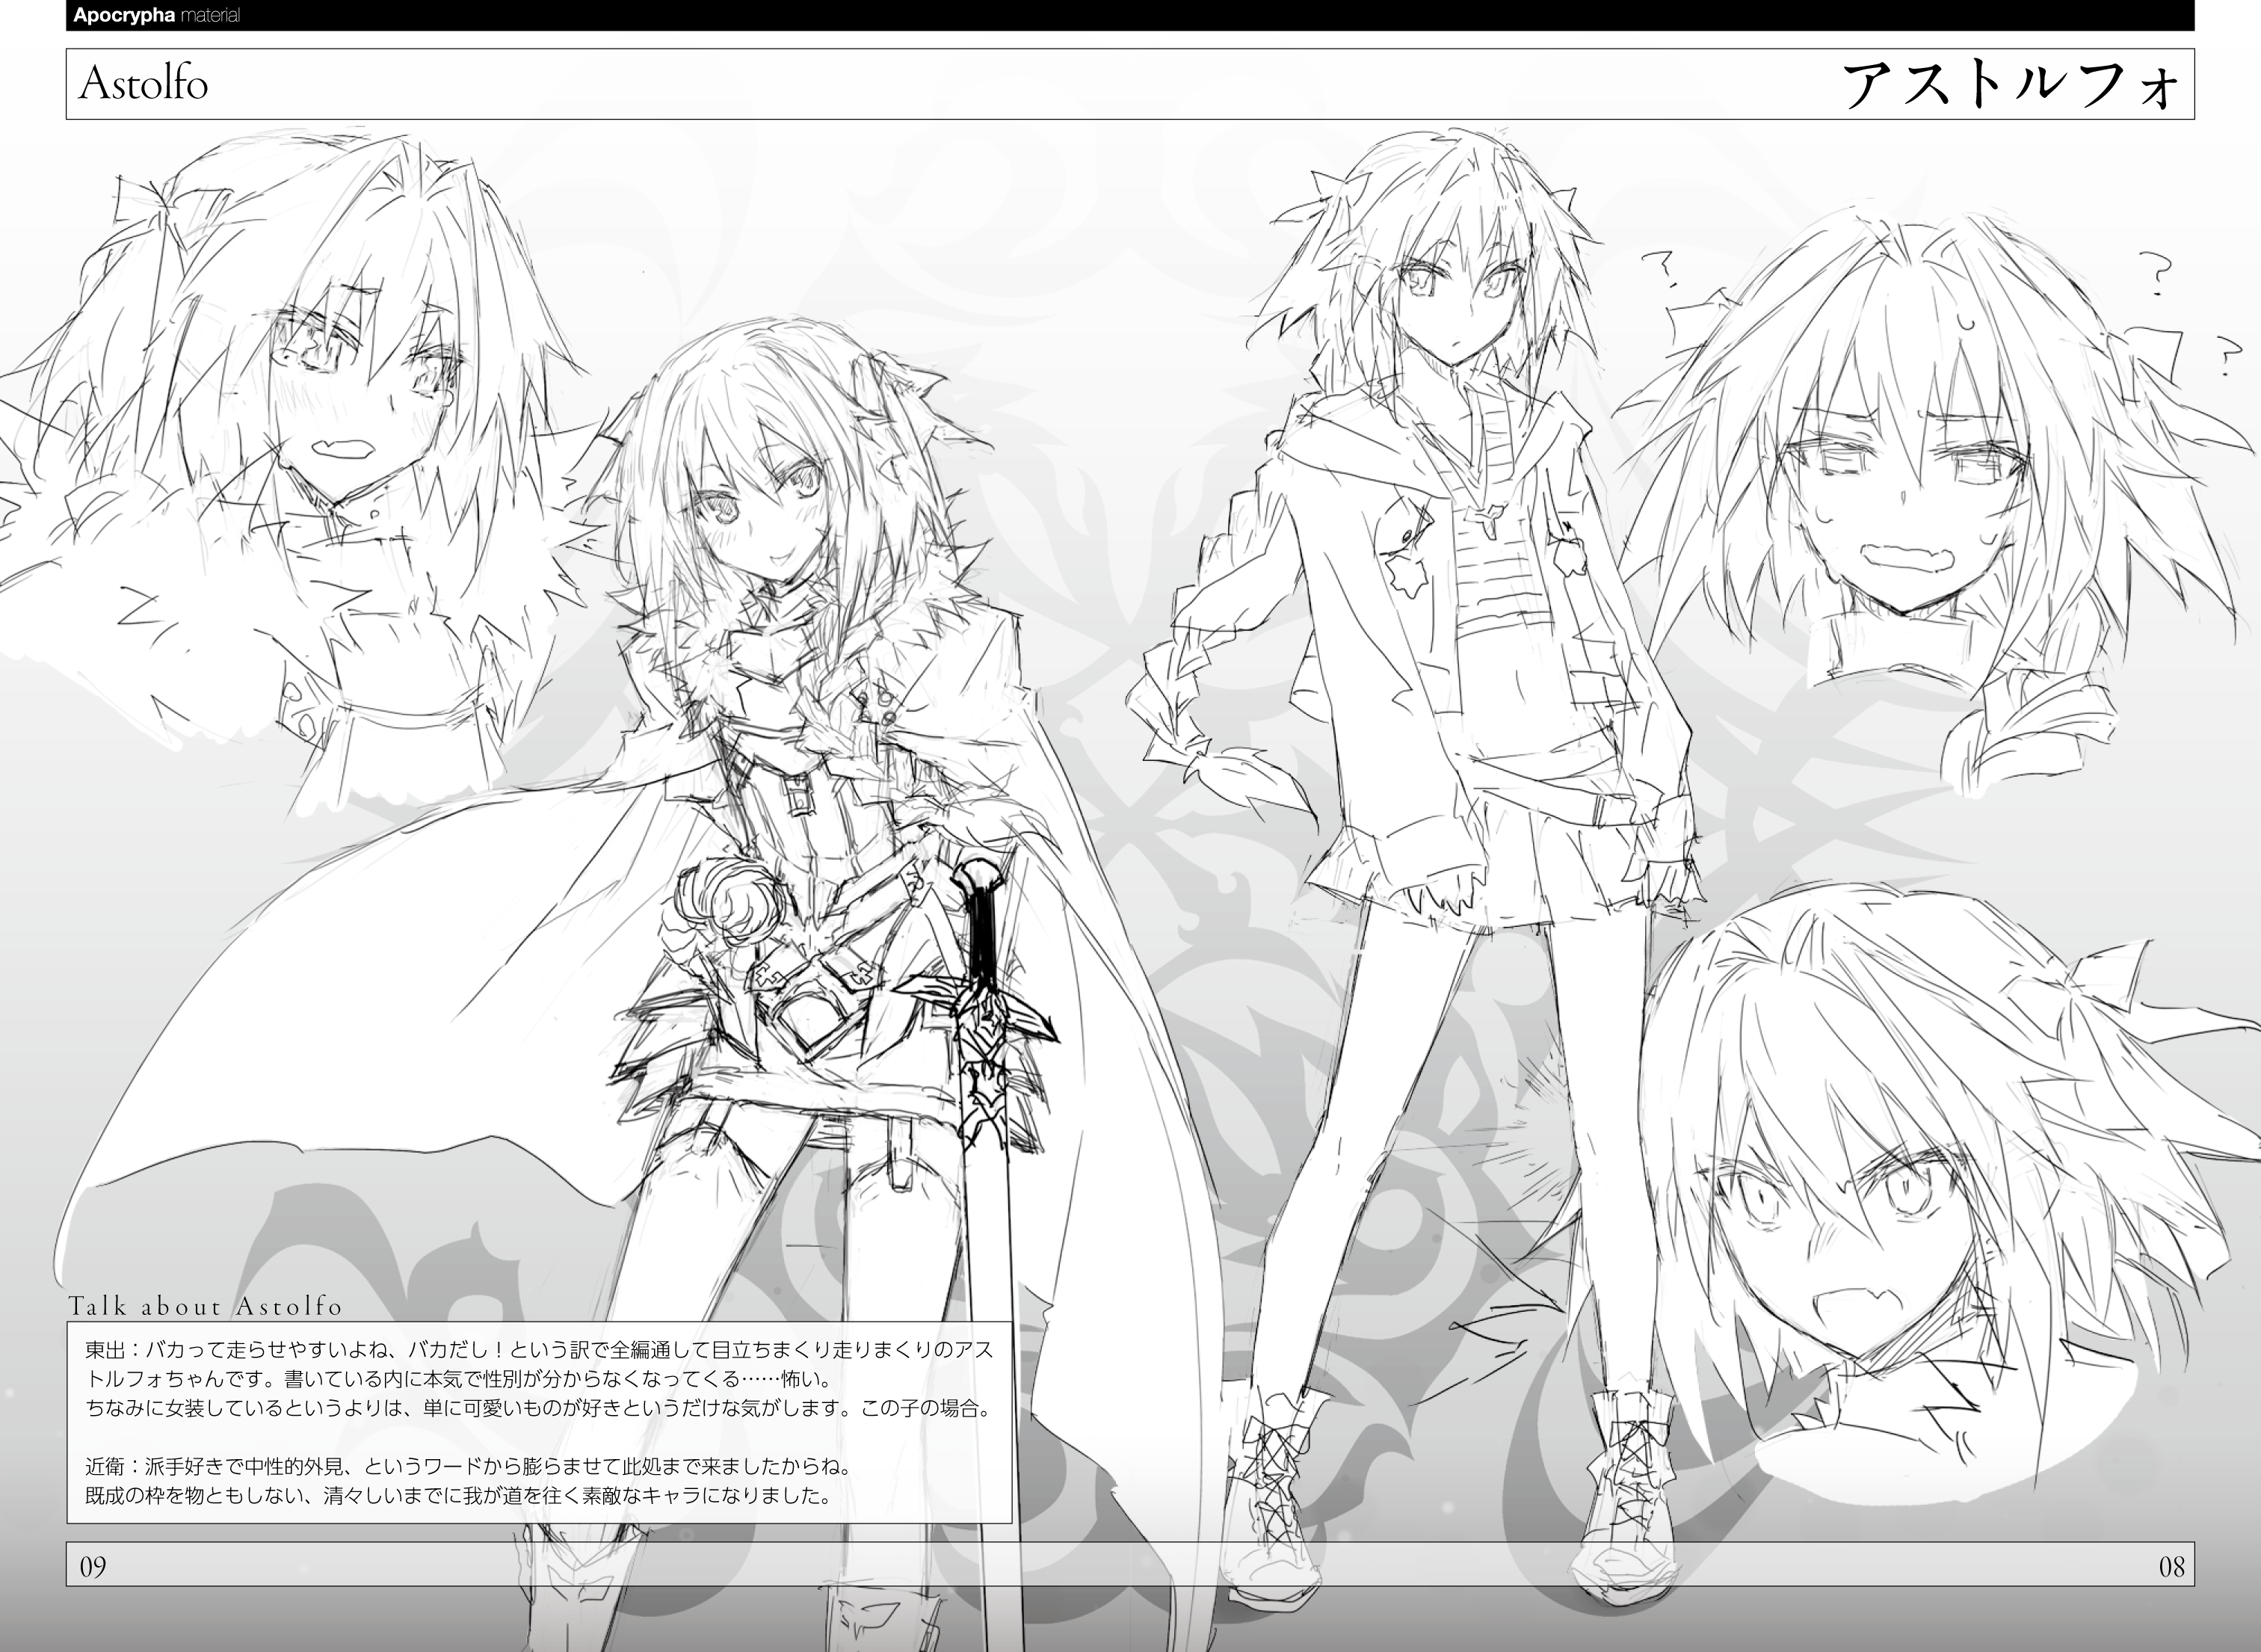 Fate Apocrypha Artbook Is Free to Help Promote TYPE-MOON's Comiket 87 Planned Releases haruhichan.com Character design 2